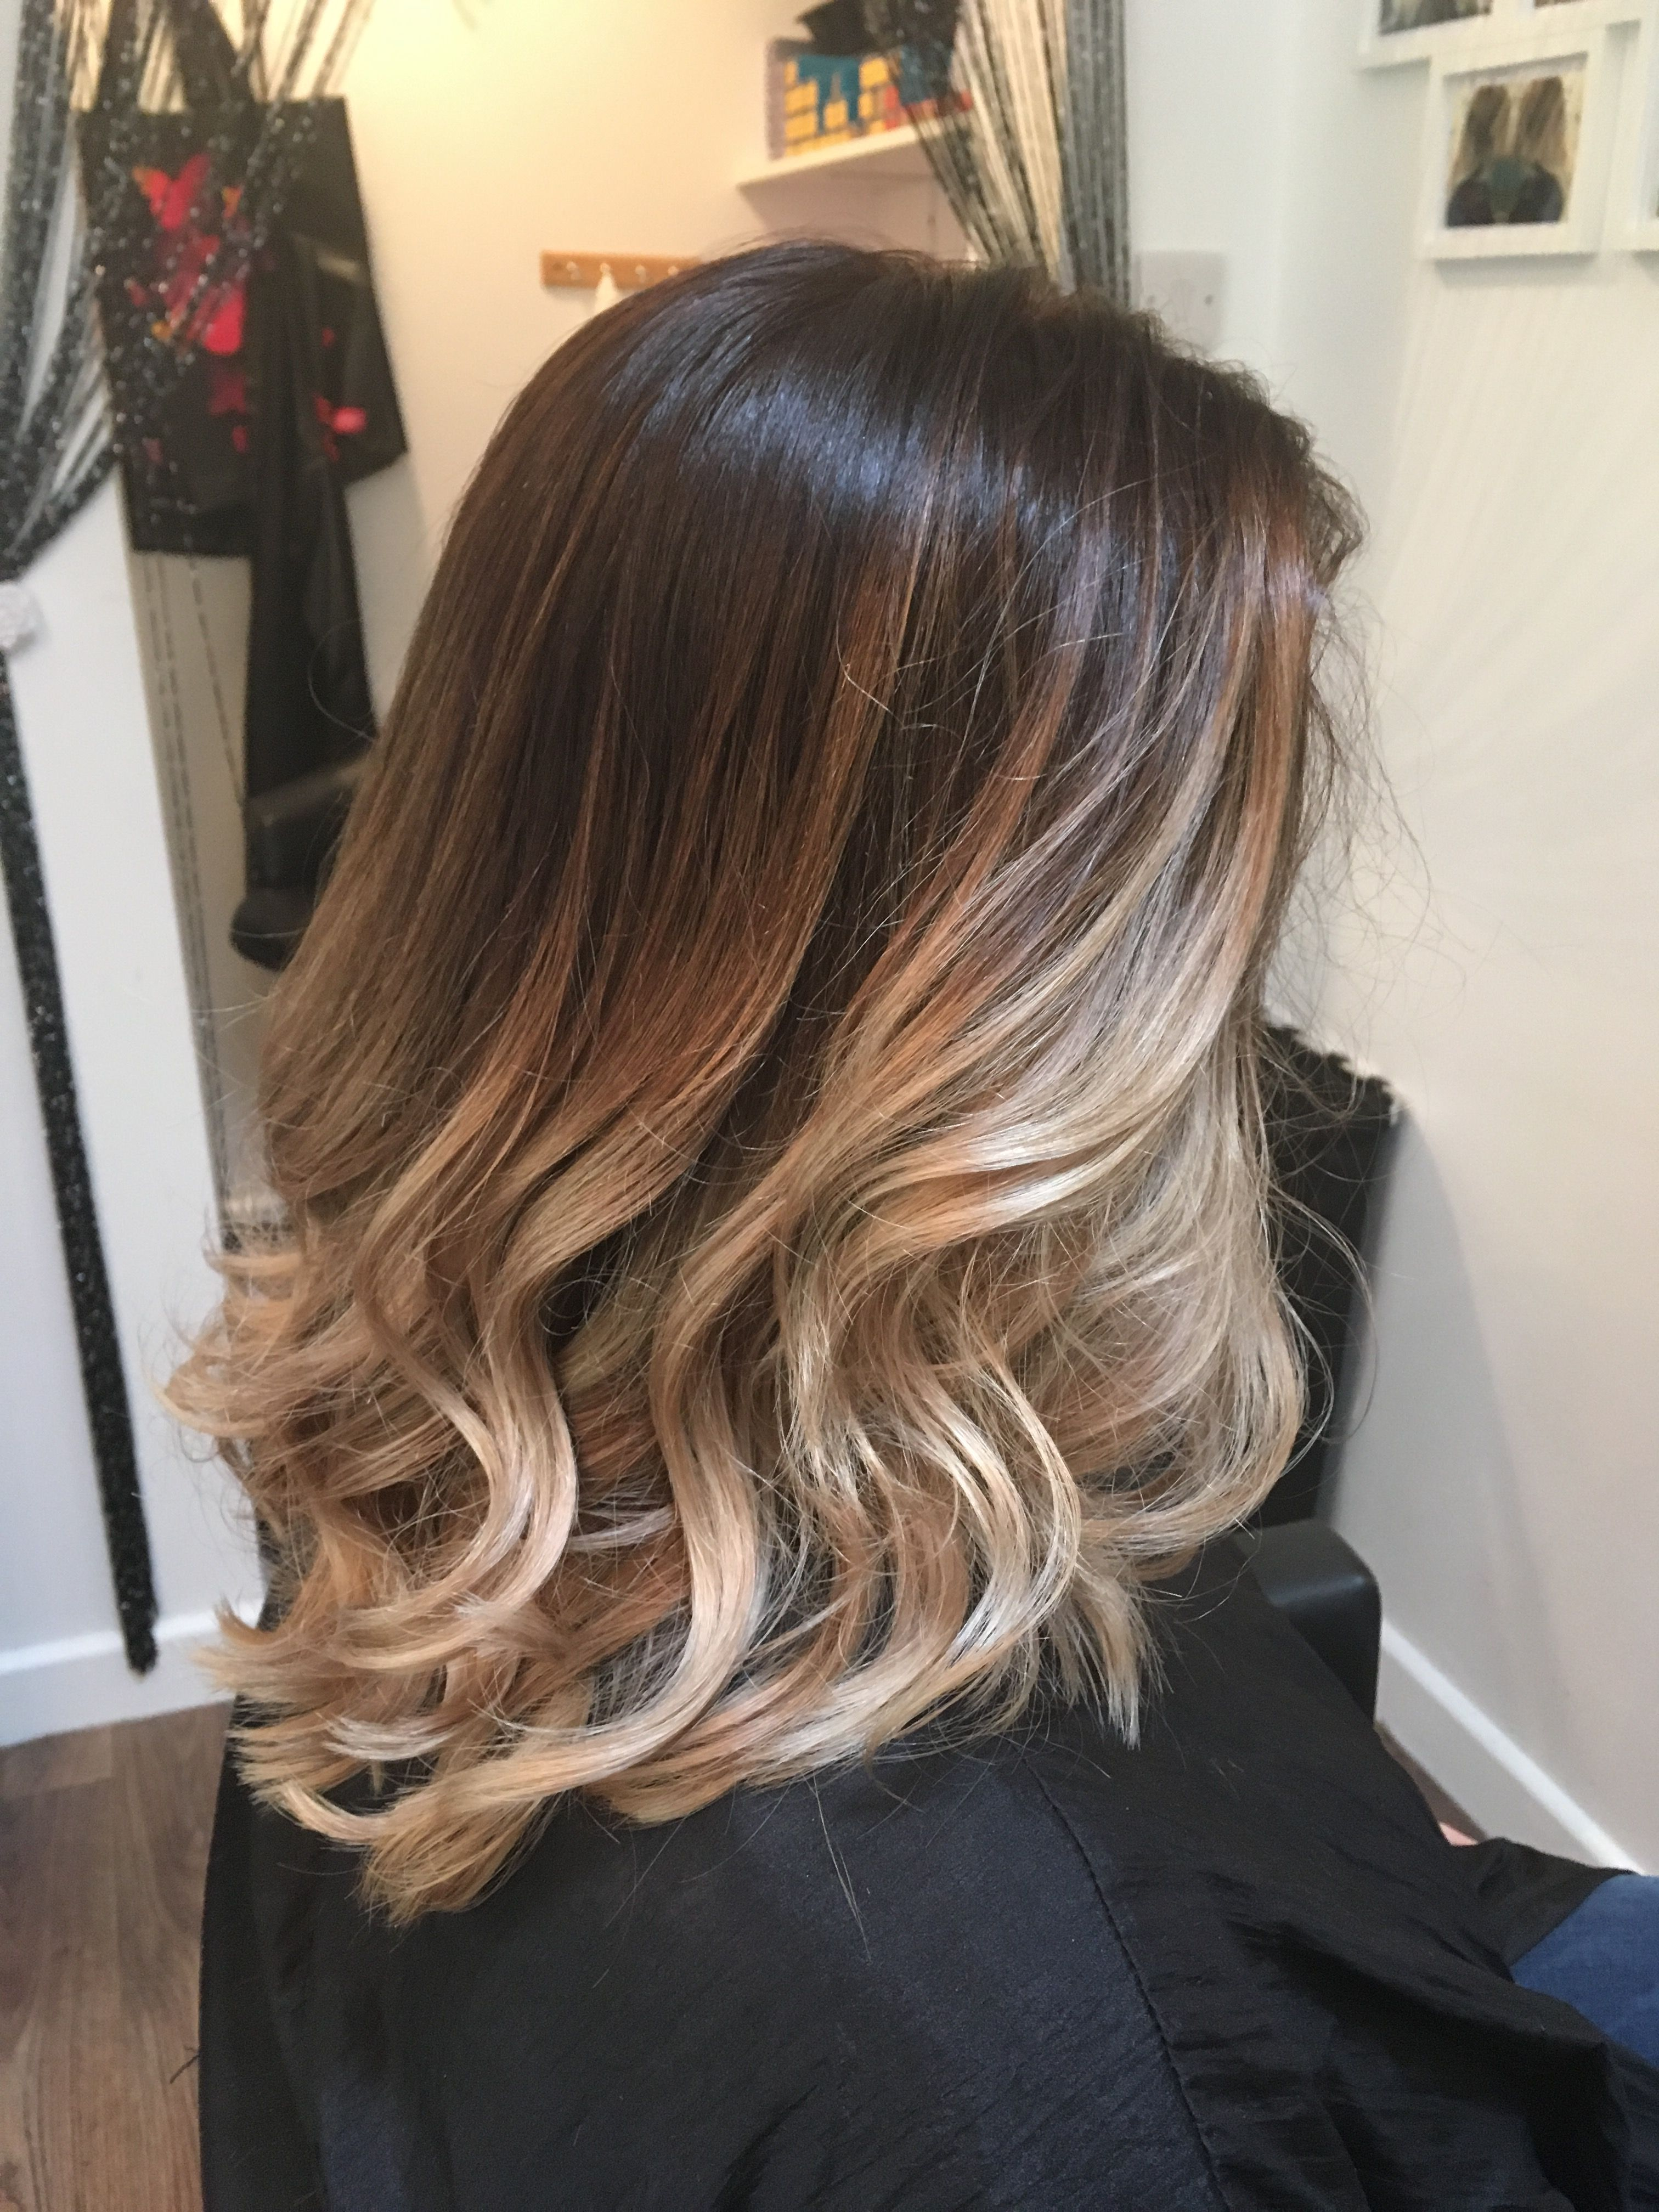 Pin By Alyssa White On Hair And Beauty Care Hair Contouring Tie